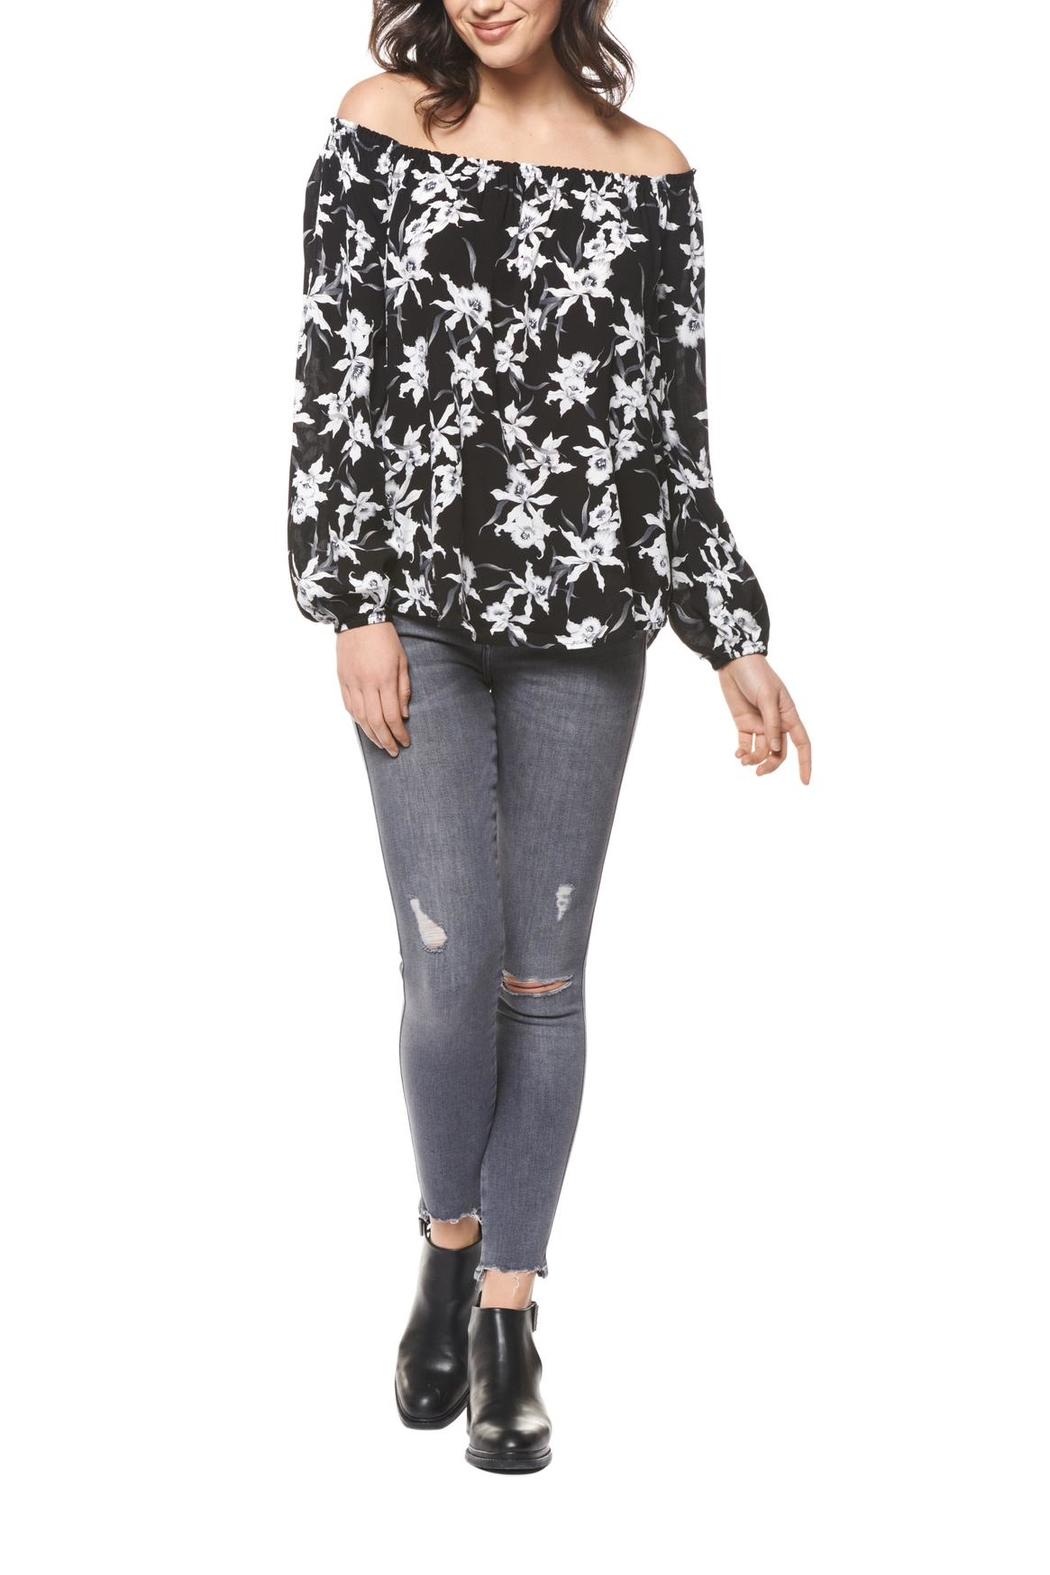 Black Tape Floral Off-Shoulder Top - Main Image